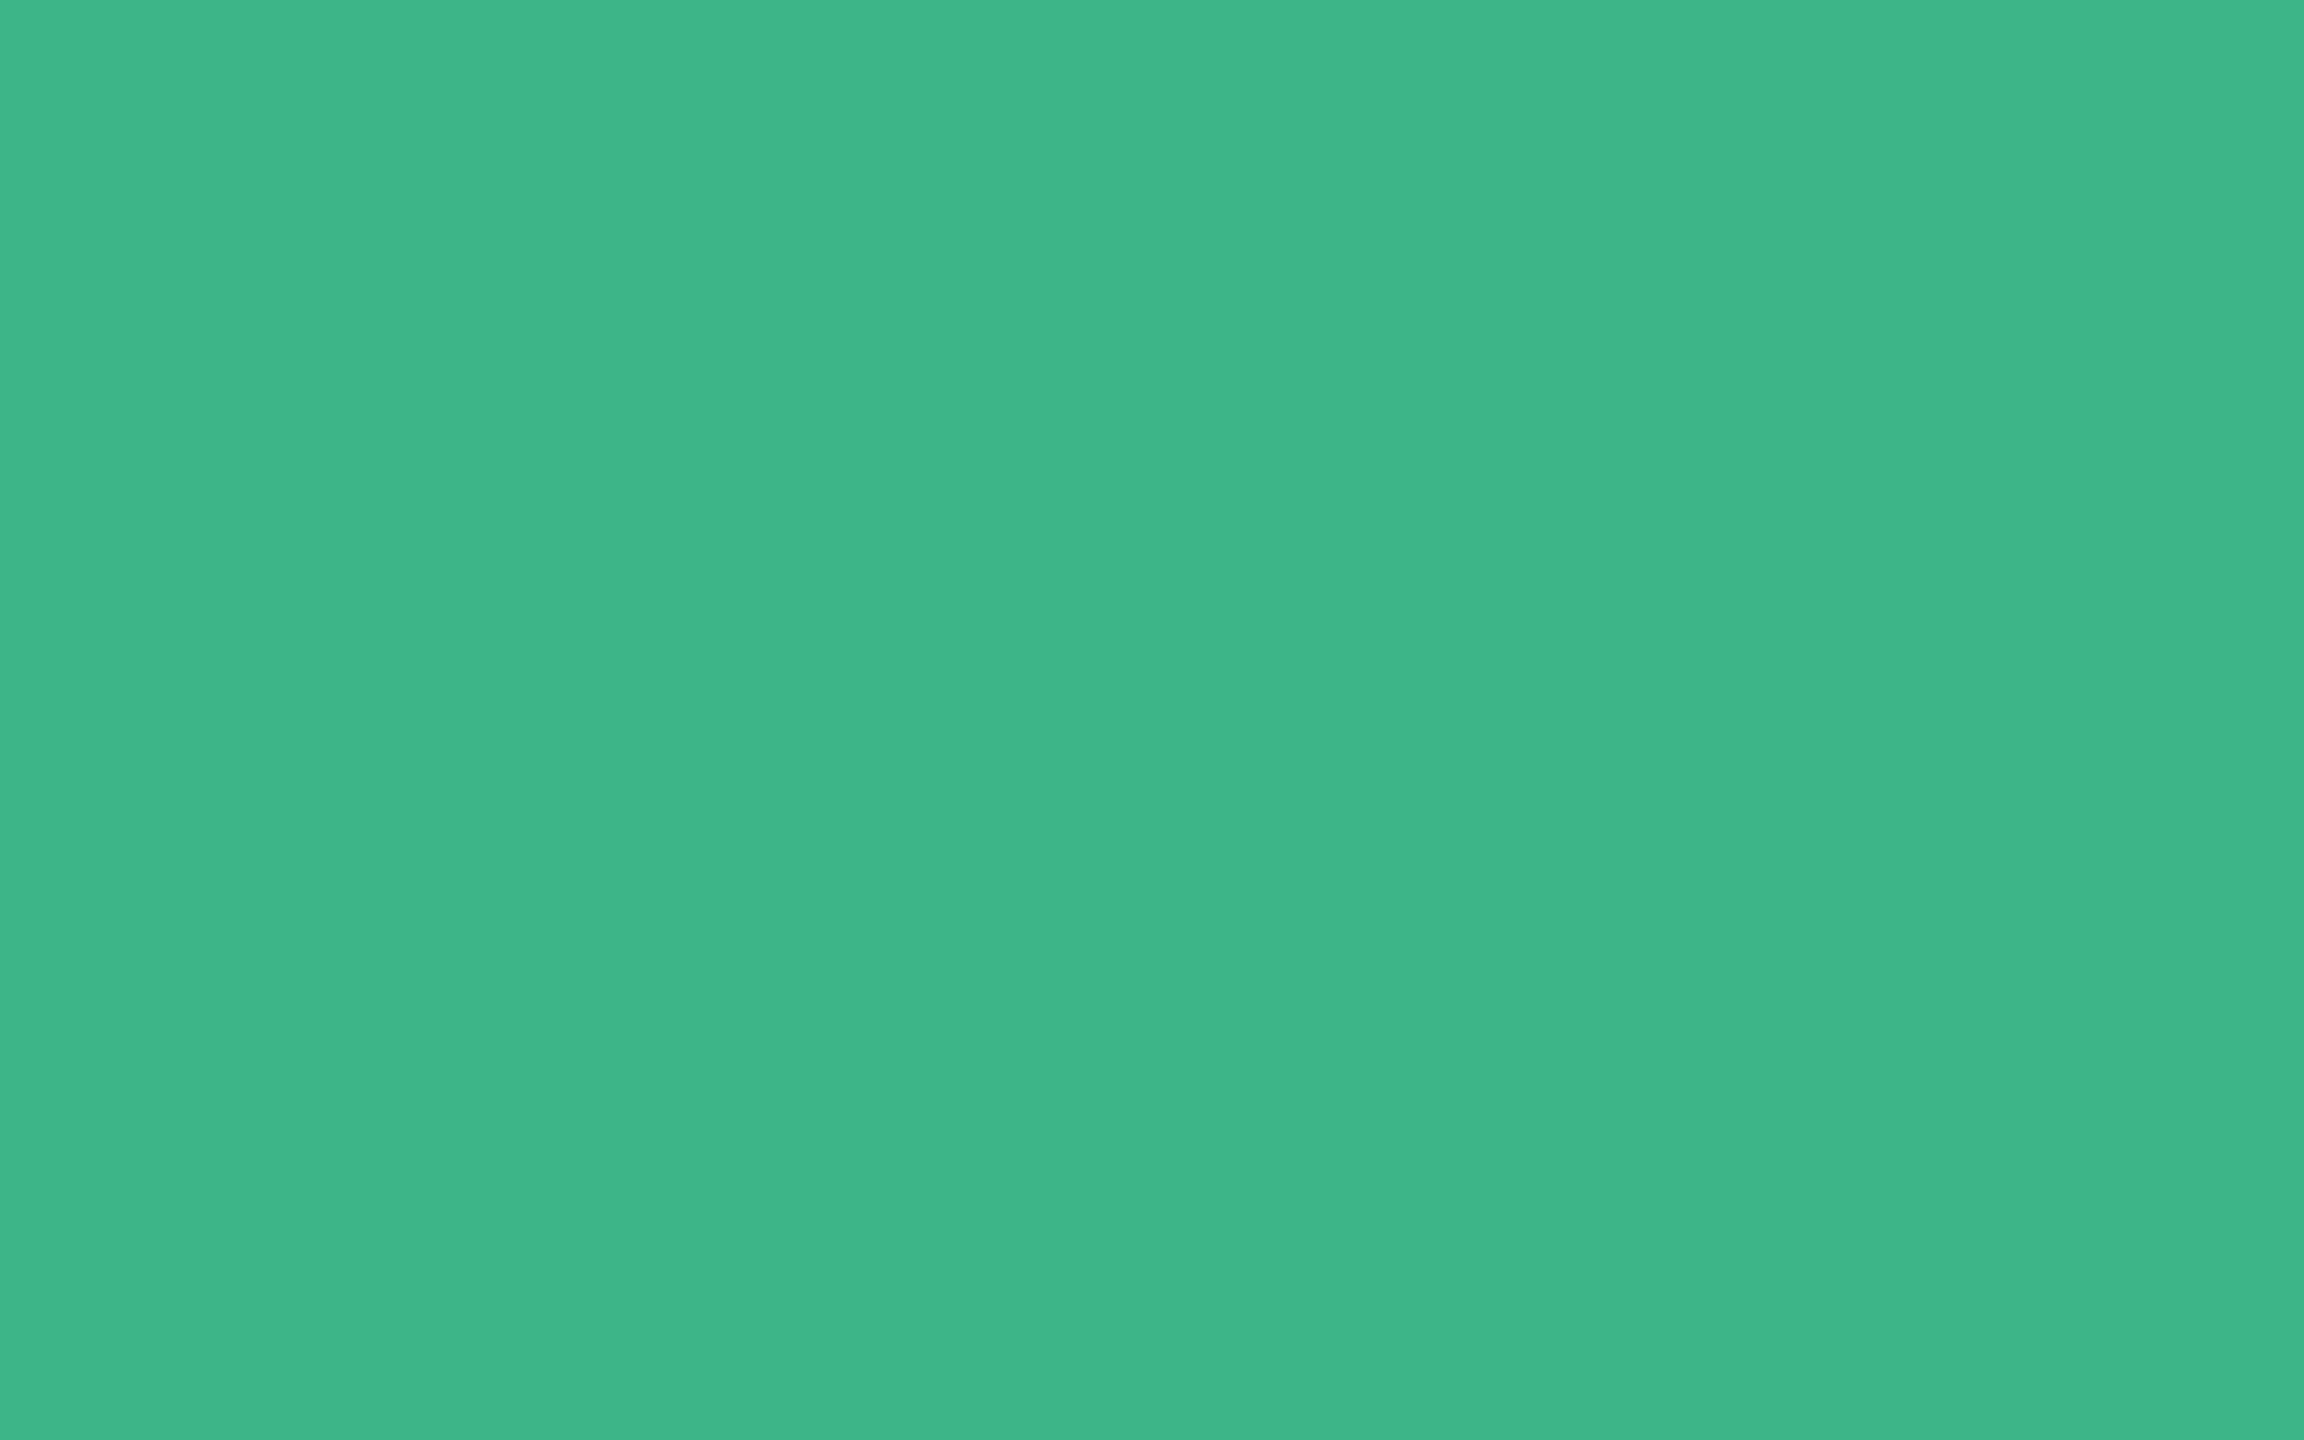 2304x1440 Mint Solid Color Background